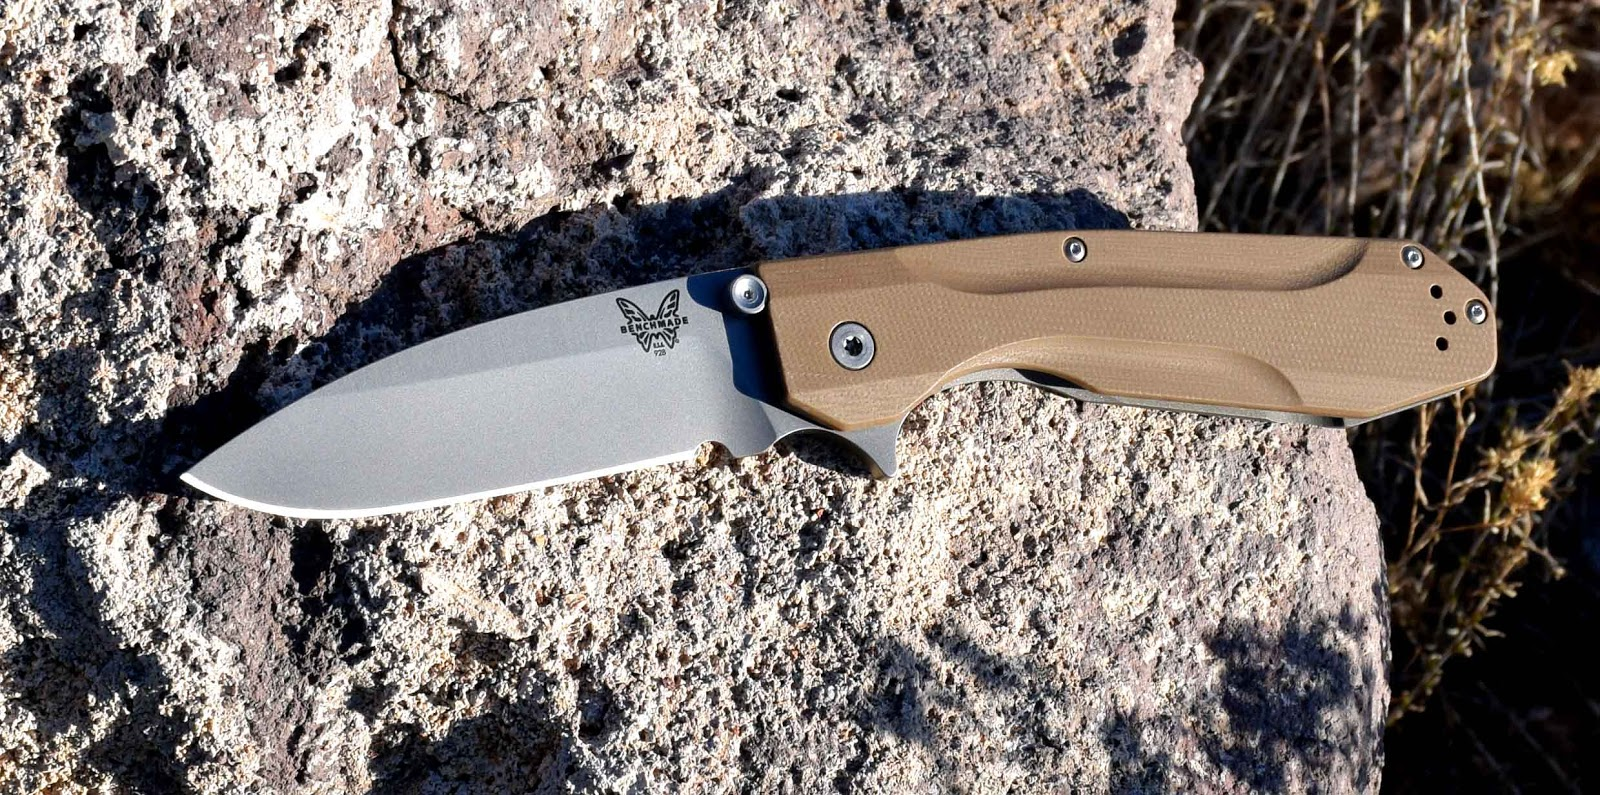 Rocky mountain bushcraft shot show 2014 first impression review - All Photos 2017 Rocky Mountain Bushcraft Jason Schwartz